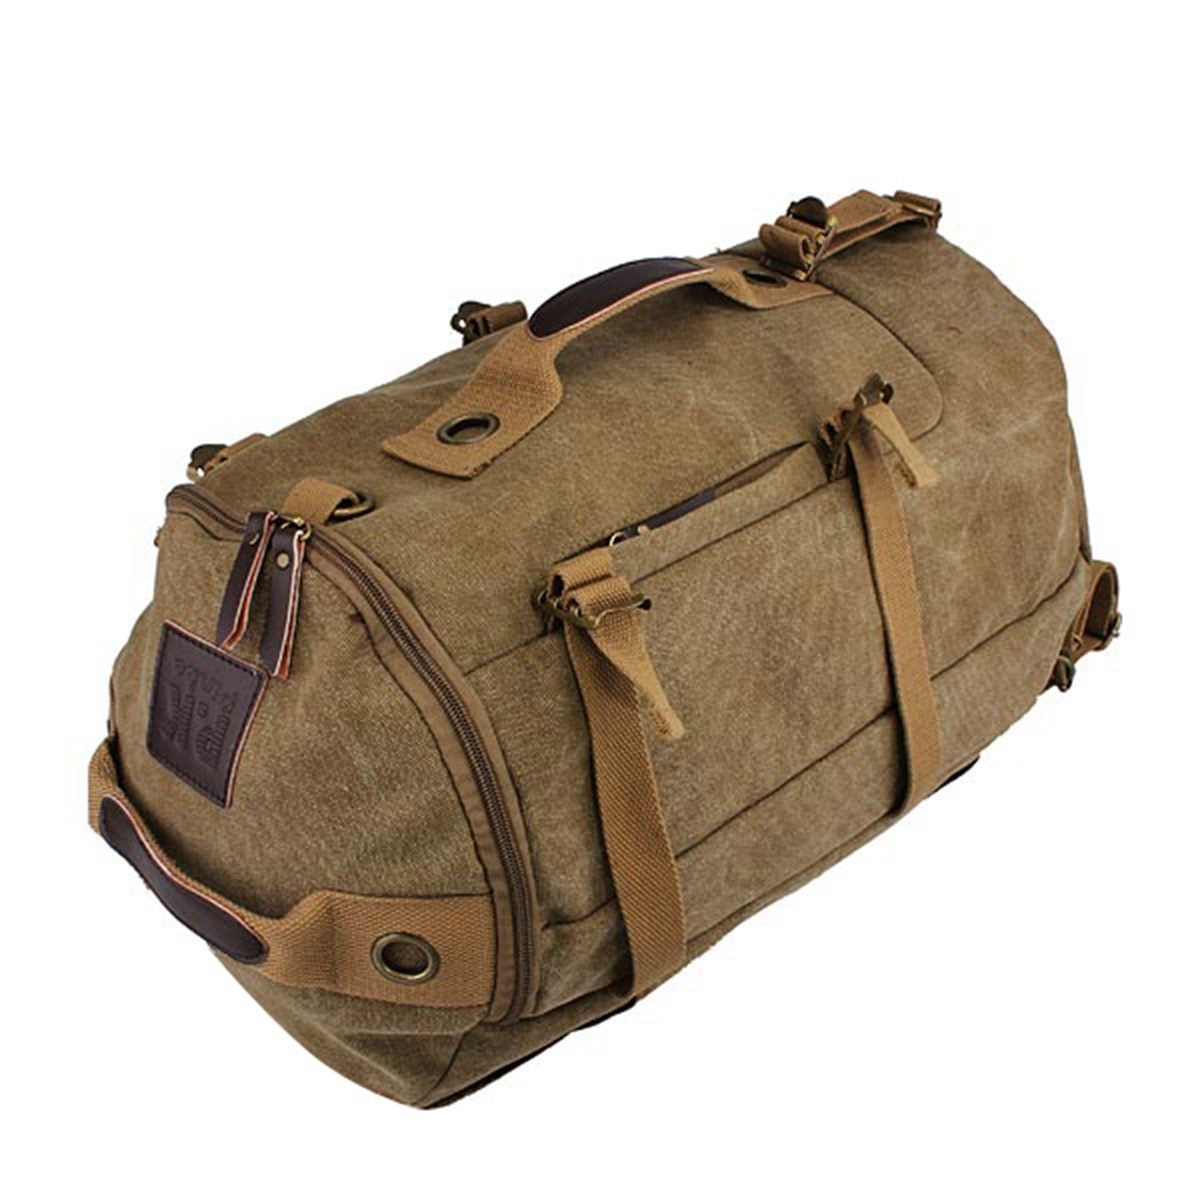 New Arrival Canvas Tactical Backpack Utility Backpack Rucksack Military Shoulder Trekking Bag for Outdoor Camping Hiking 7colors new arrival 38l military tactical backpack 500d molle rucksacks outdoor sport camping trekking bag backpacks cl5 0070